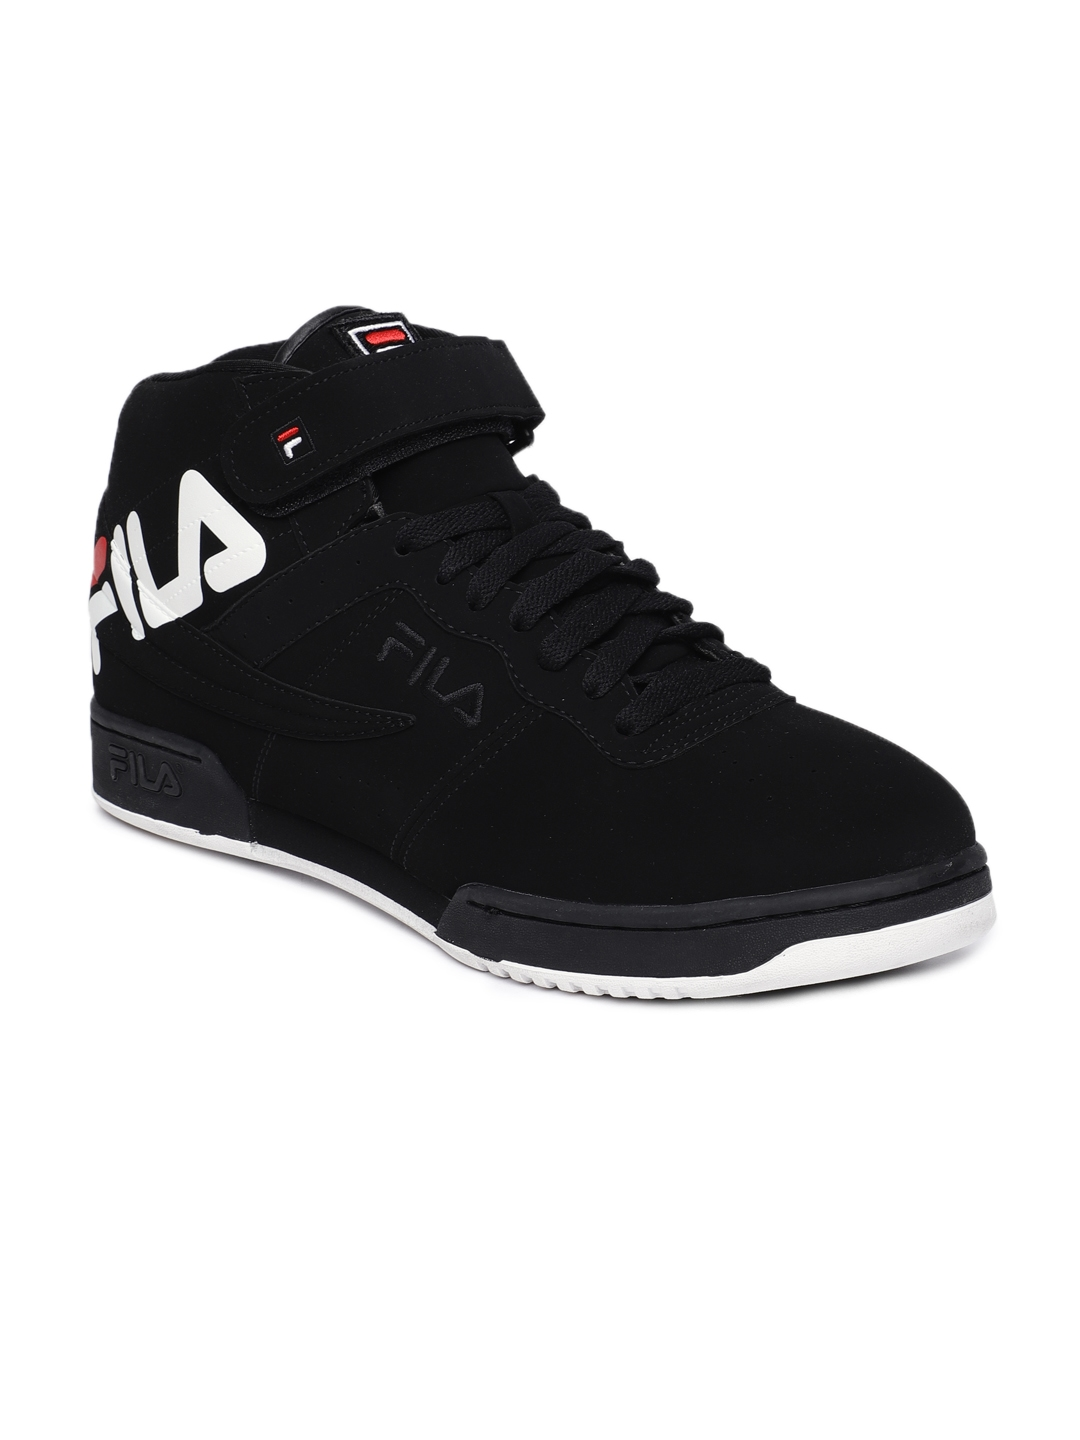 04c42901716b Buy FILA Men Black Solid Synthetic Leather Mid Top F 13 Sneakers ...